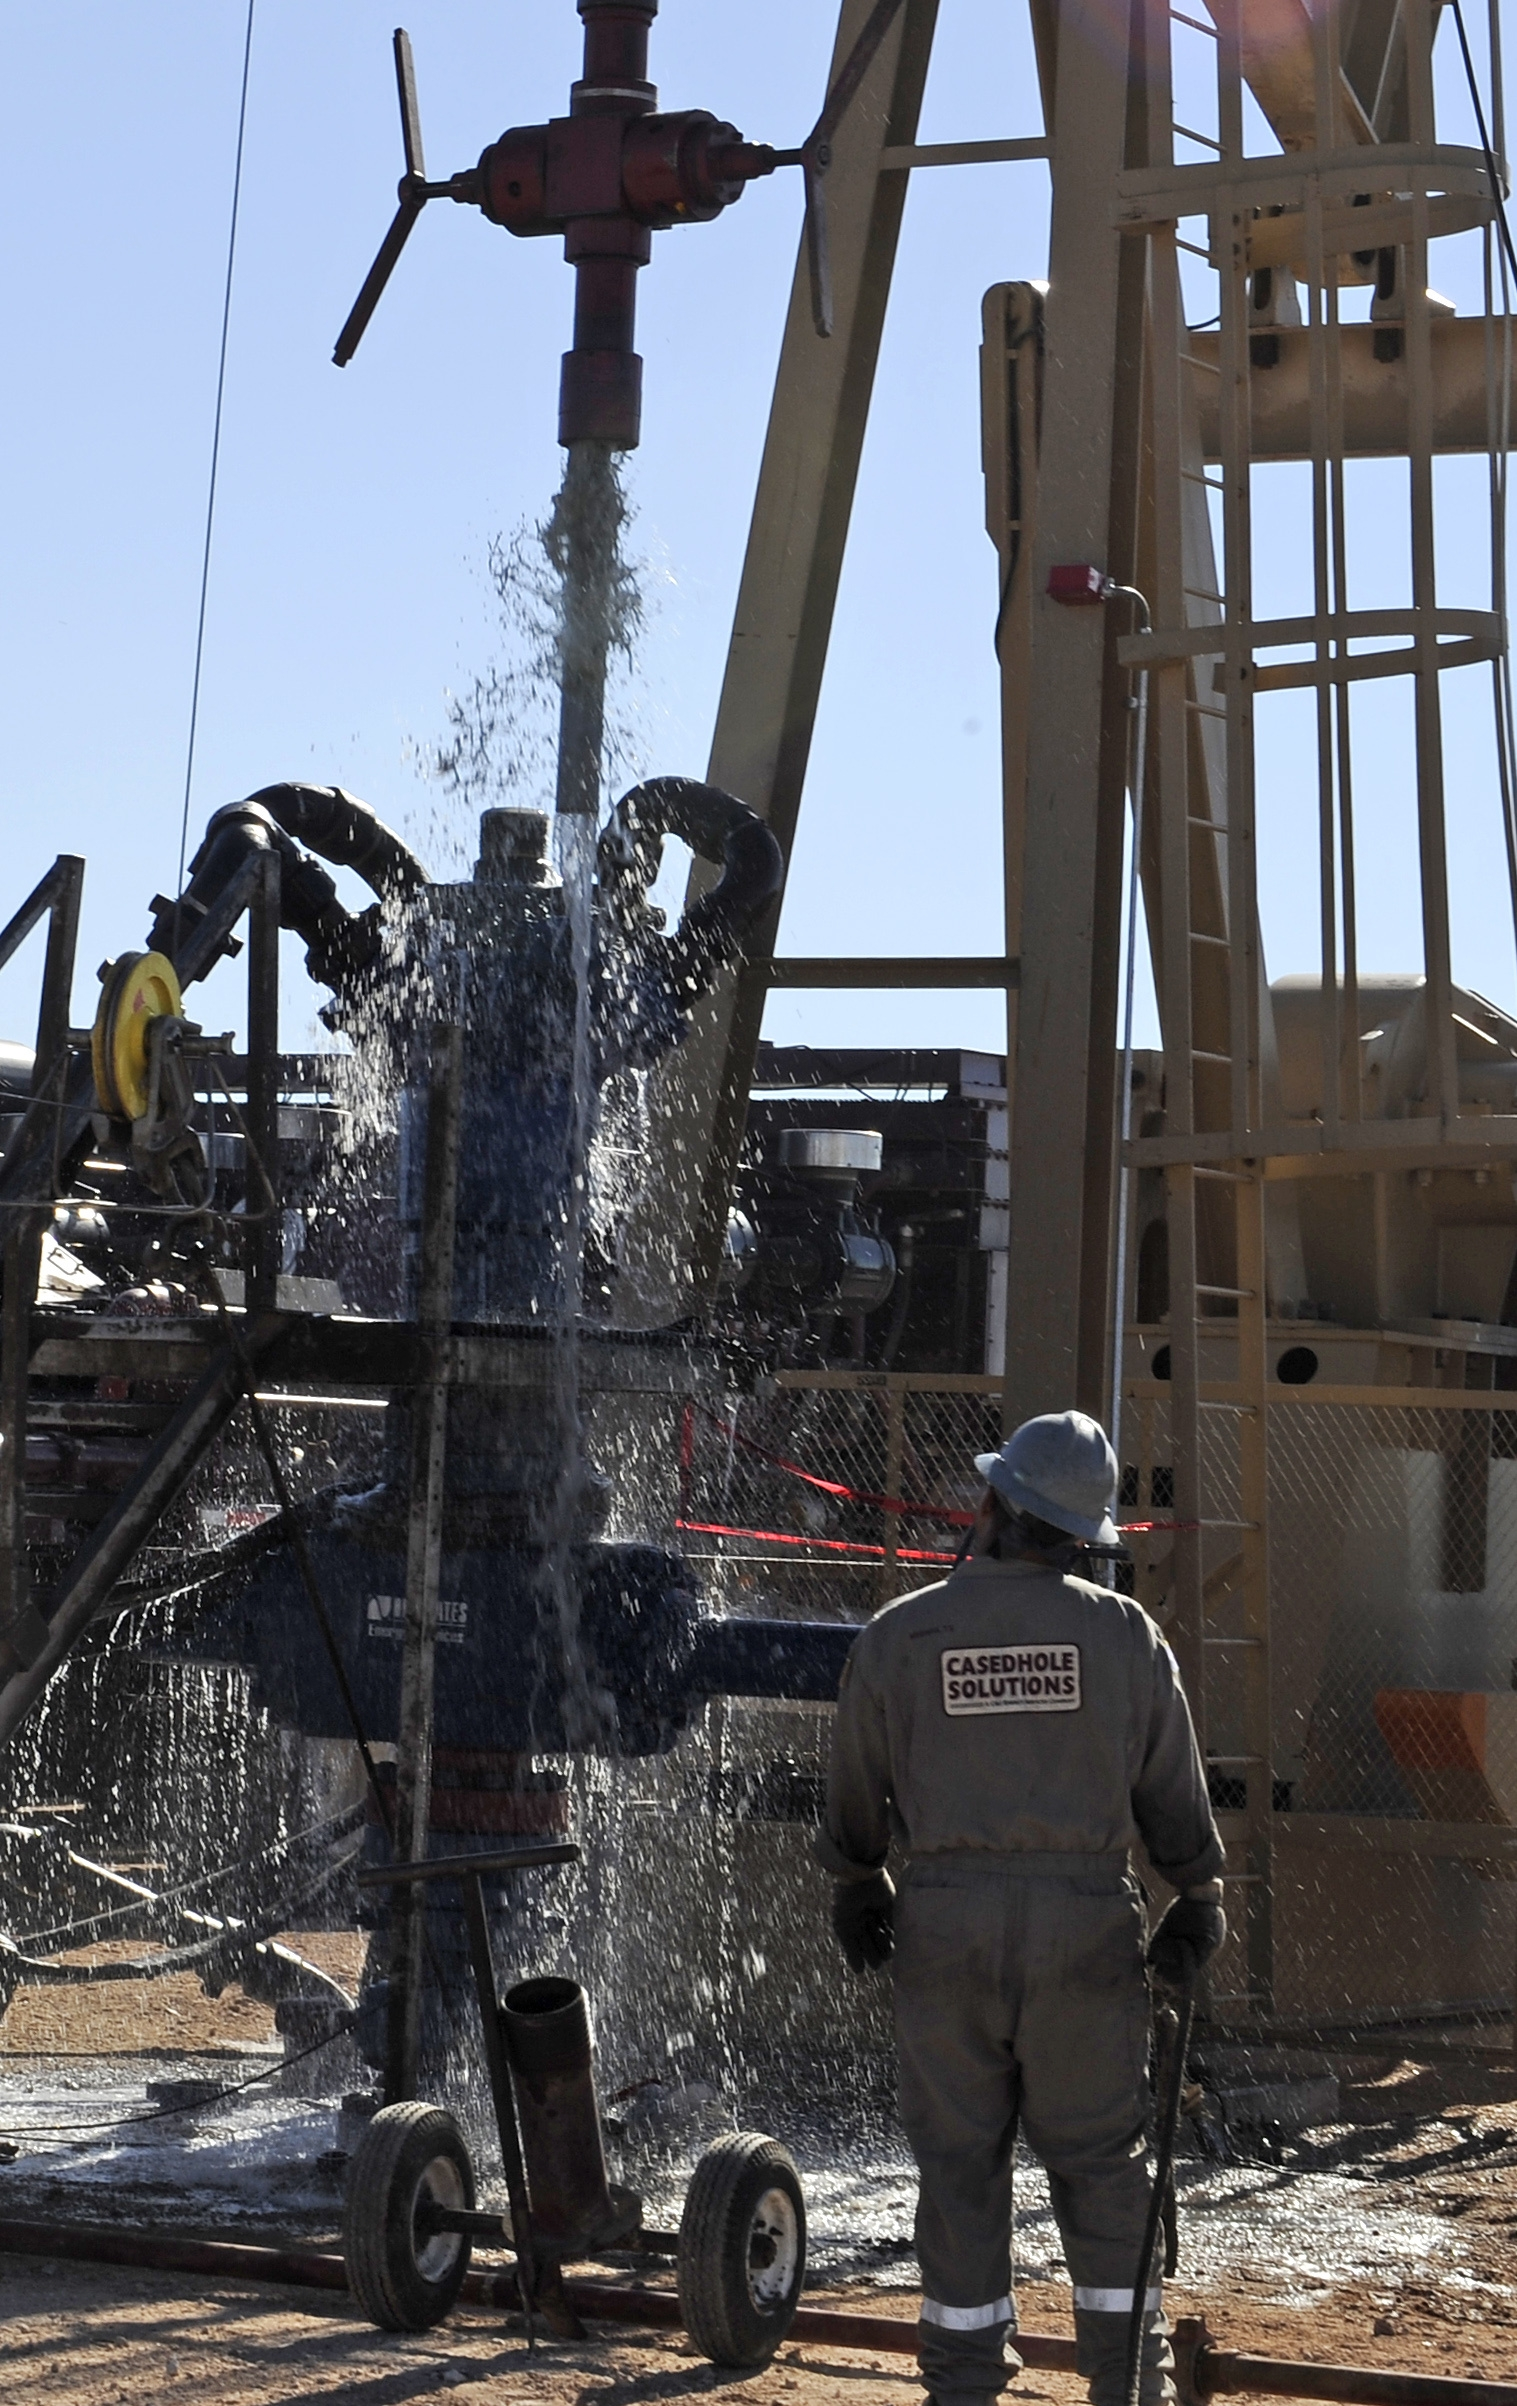 Water gushes out of a drilling pipe as it is pulled up to be replaced with a fresh pipe at a hydraulic fracturing site in Midland, Texas.